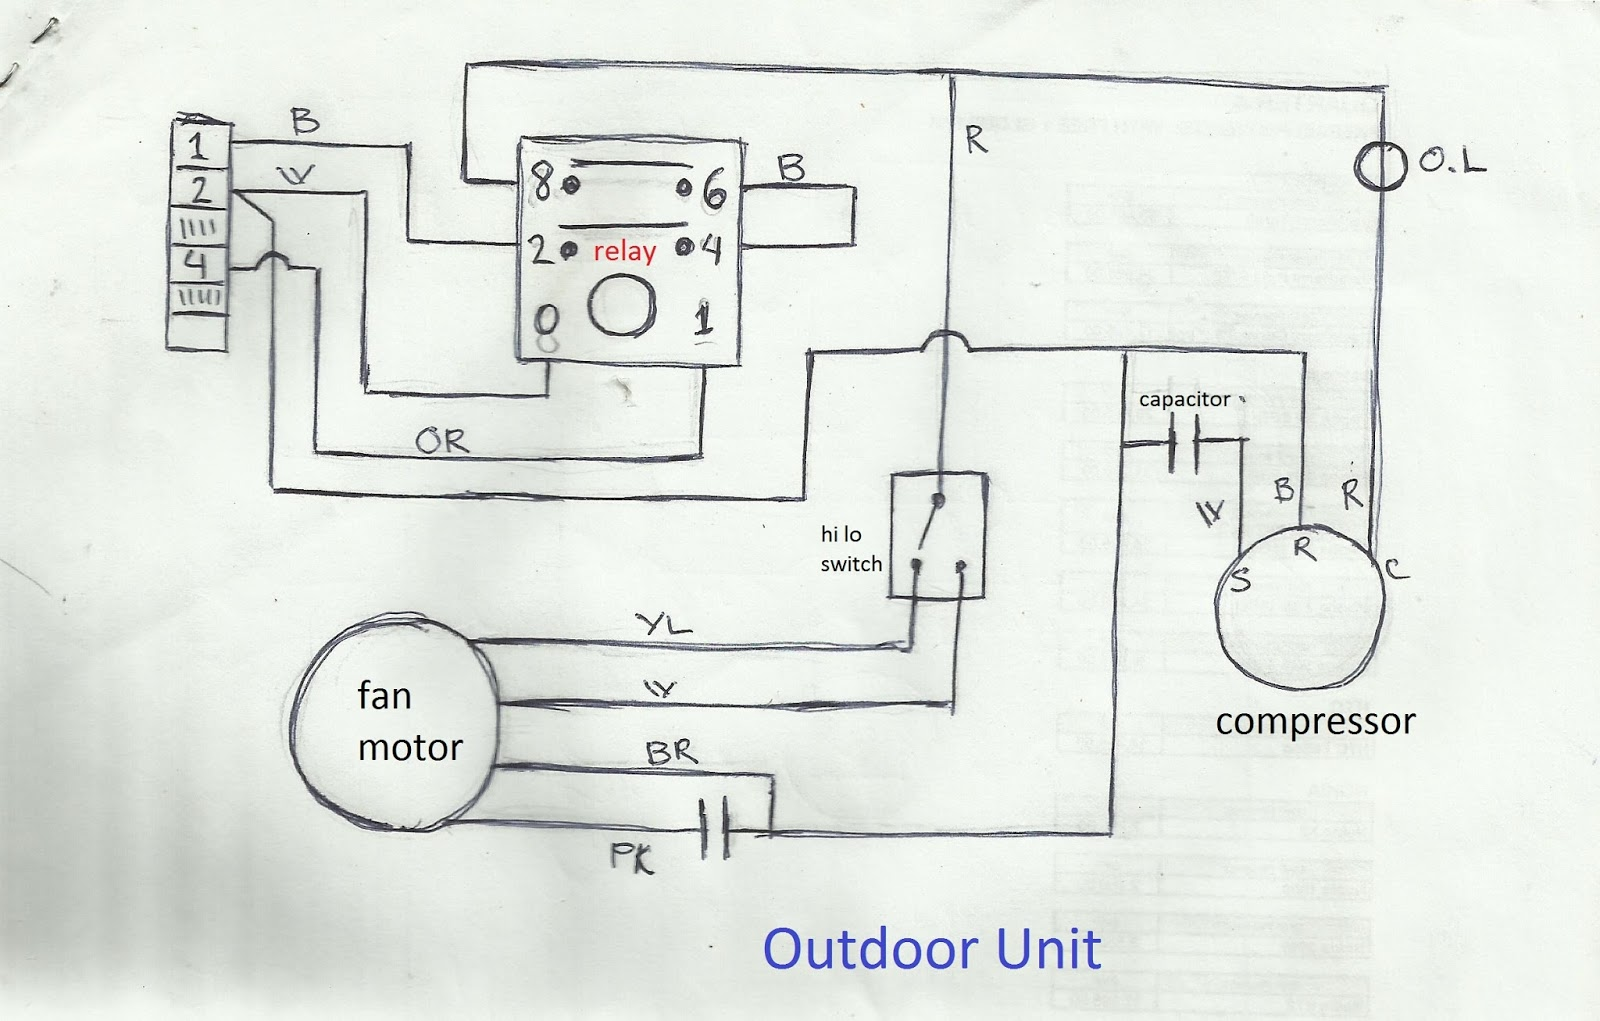 air conditioner fan wiring diagram wiring library pressor relay wiring diagrams in addition trane ac unit wiring diagram [ 1600 x 1021 Pixel ]